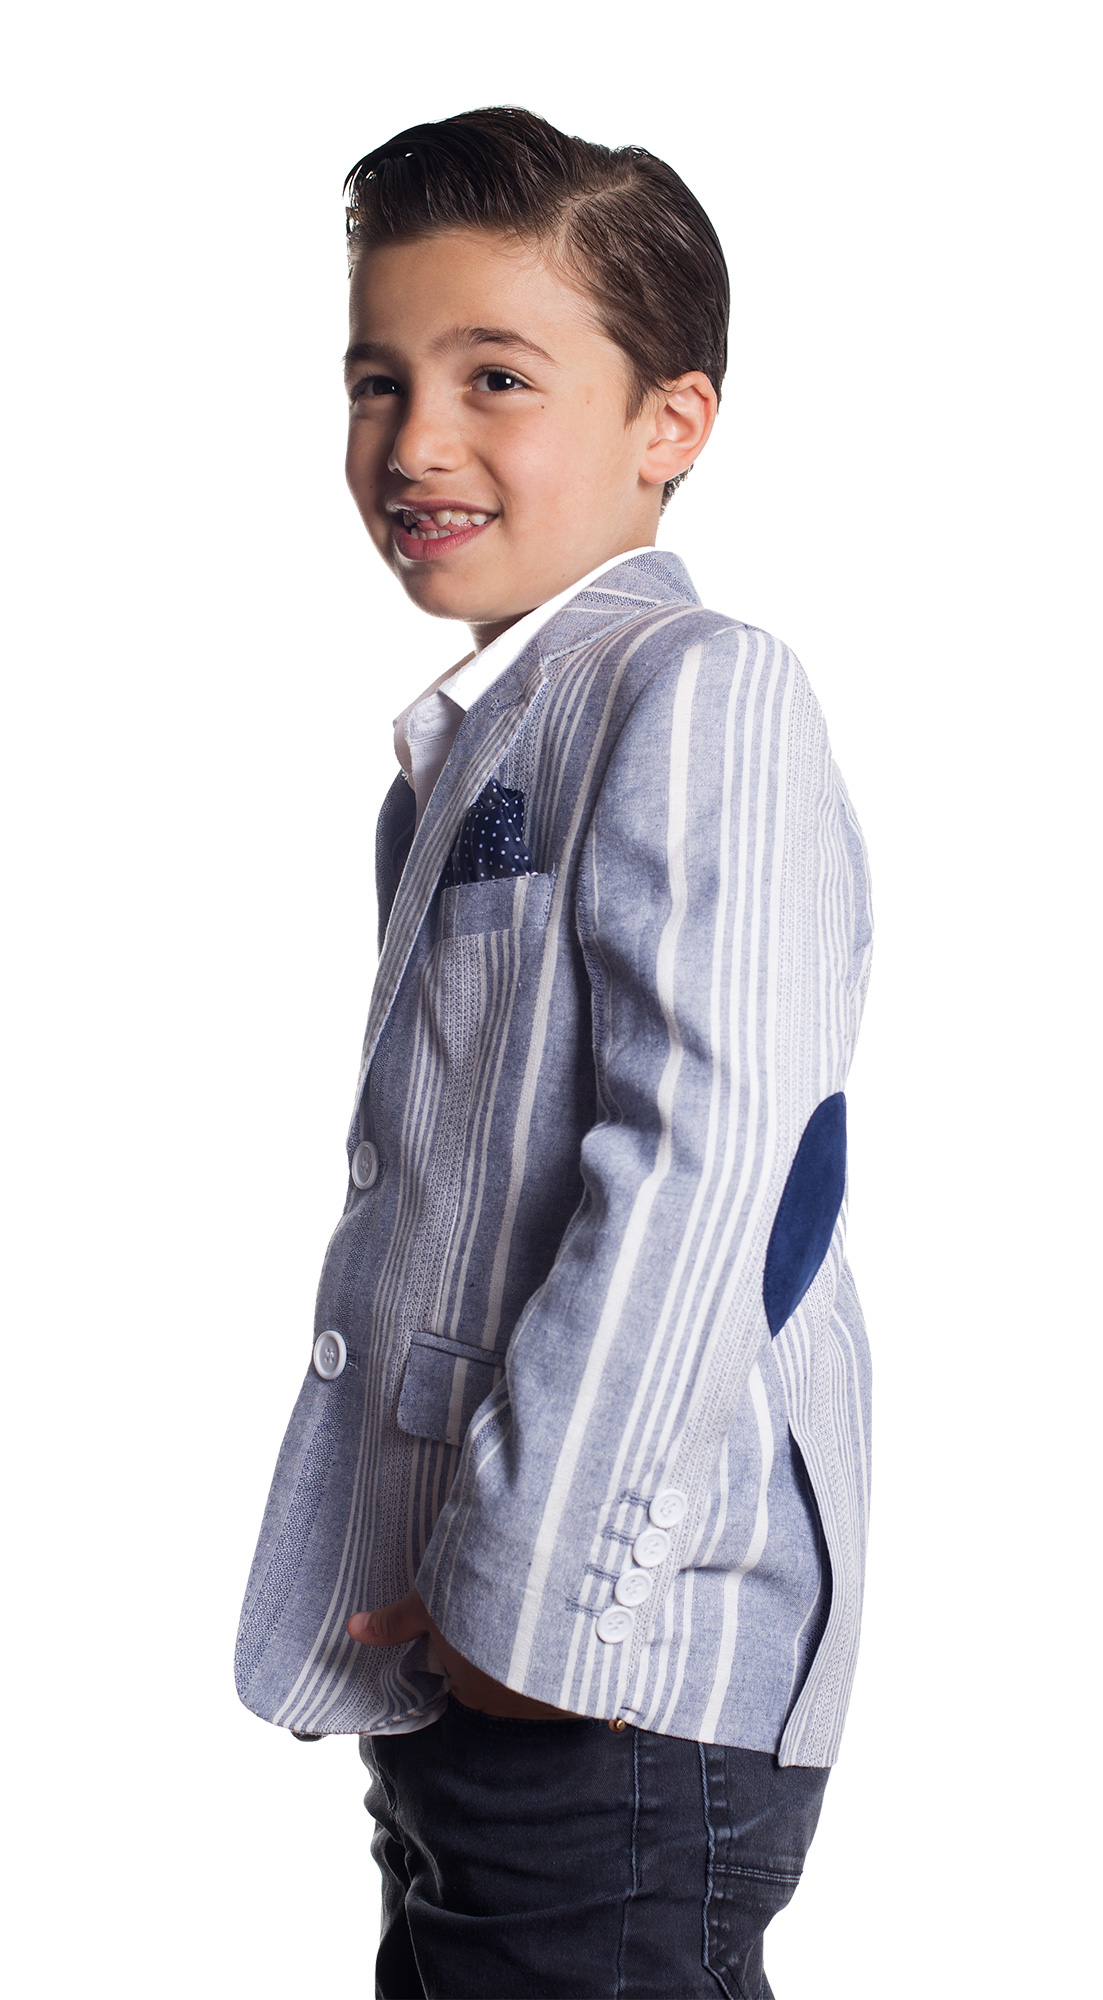 Wild Stripe Pattern Boys Blazers / Sports Coat Jacket EBBS1664